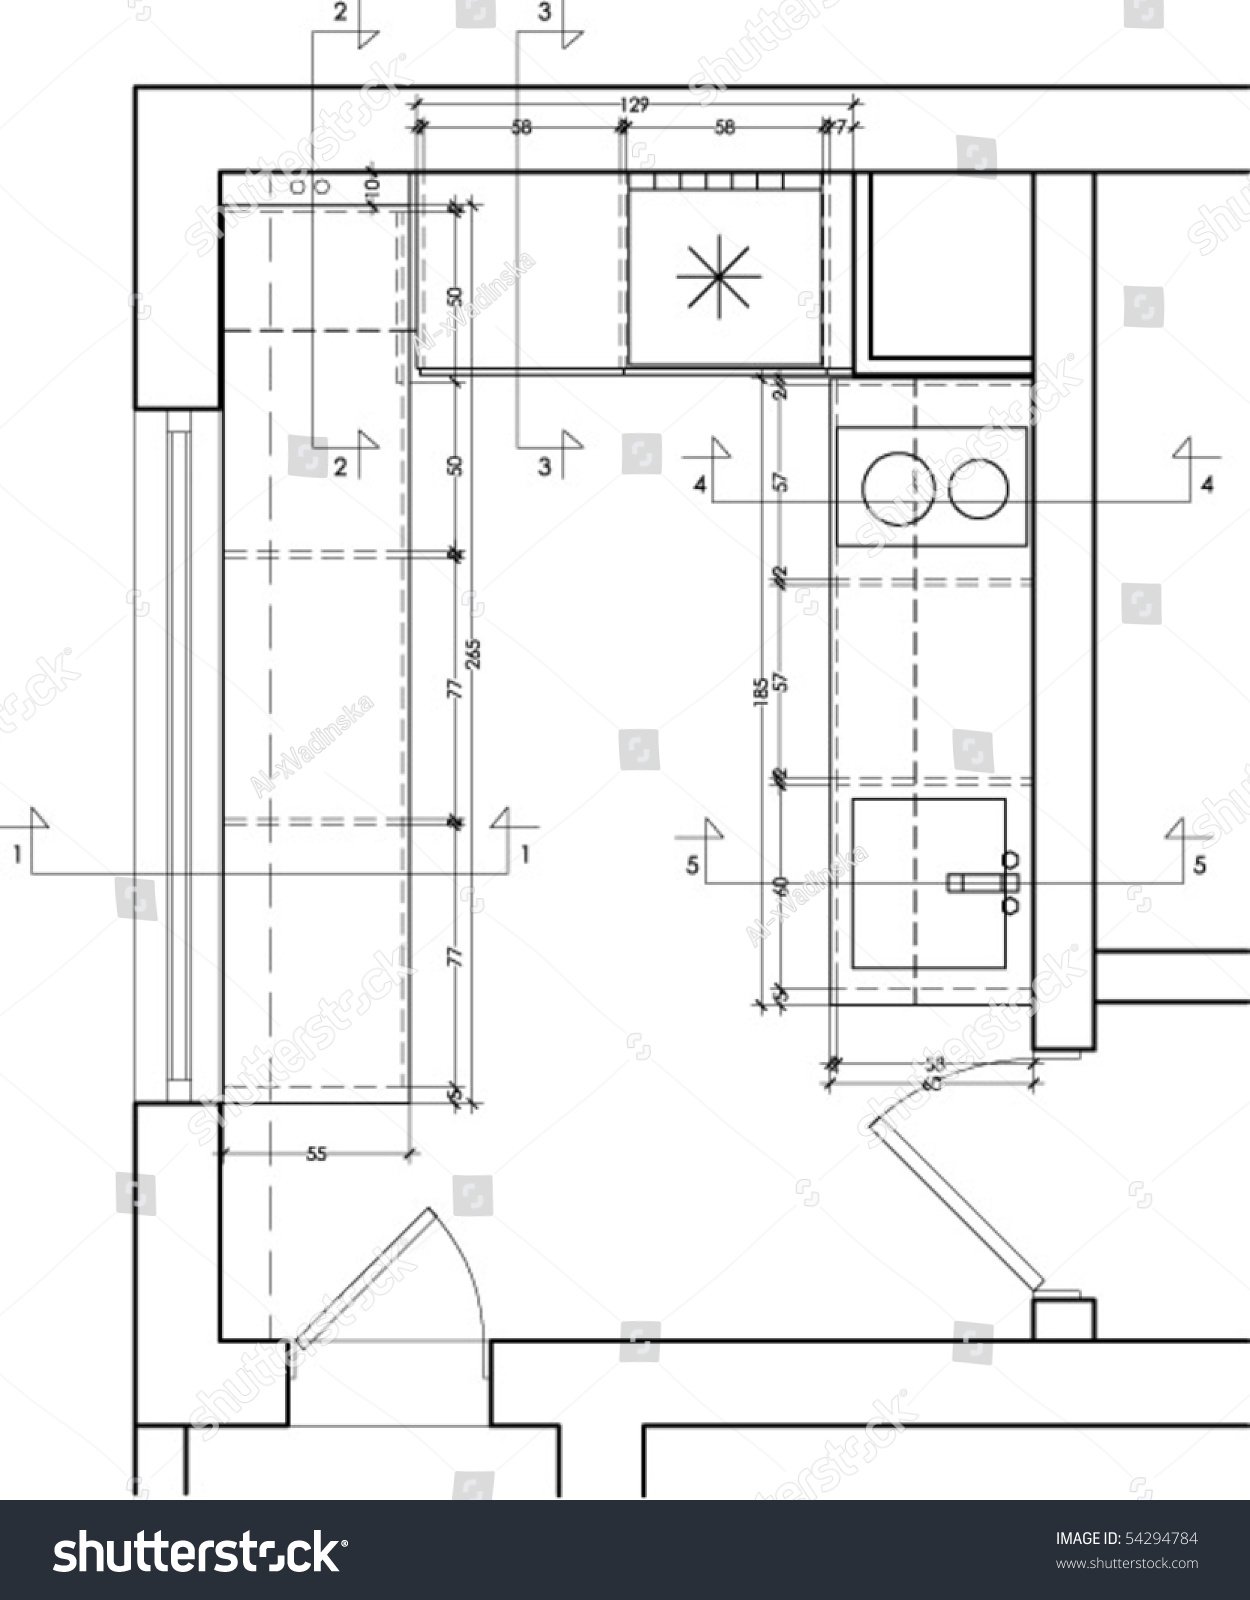 Kitchen drawings the best quality home design for Kitchen plan view